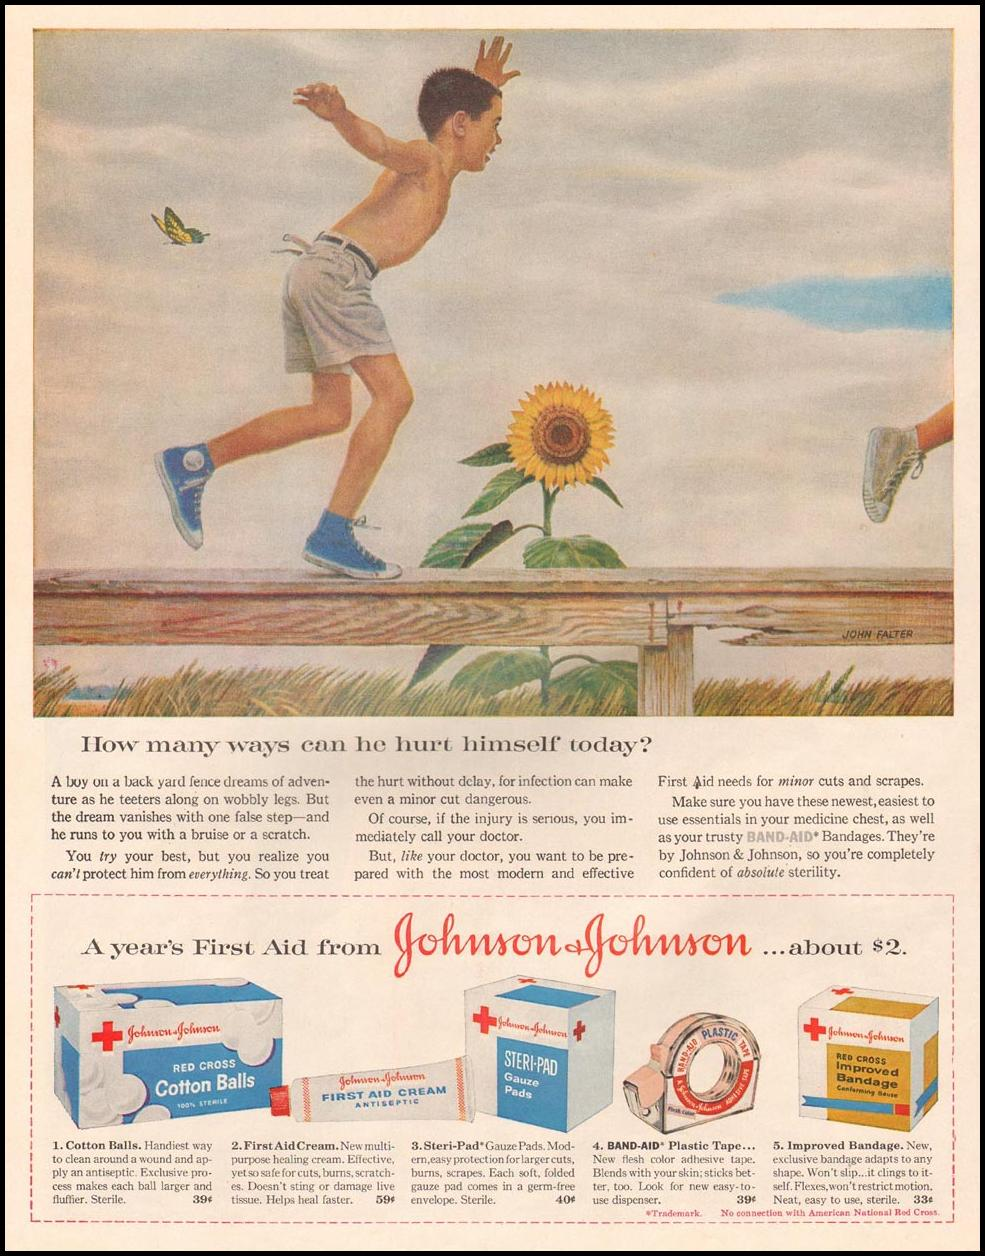 JOHNSON & JOHNSON FIRST AID PRODUCTS LIFE 08/10/1959